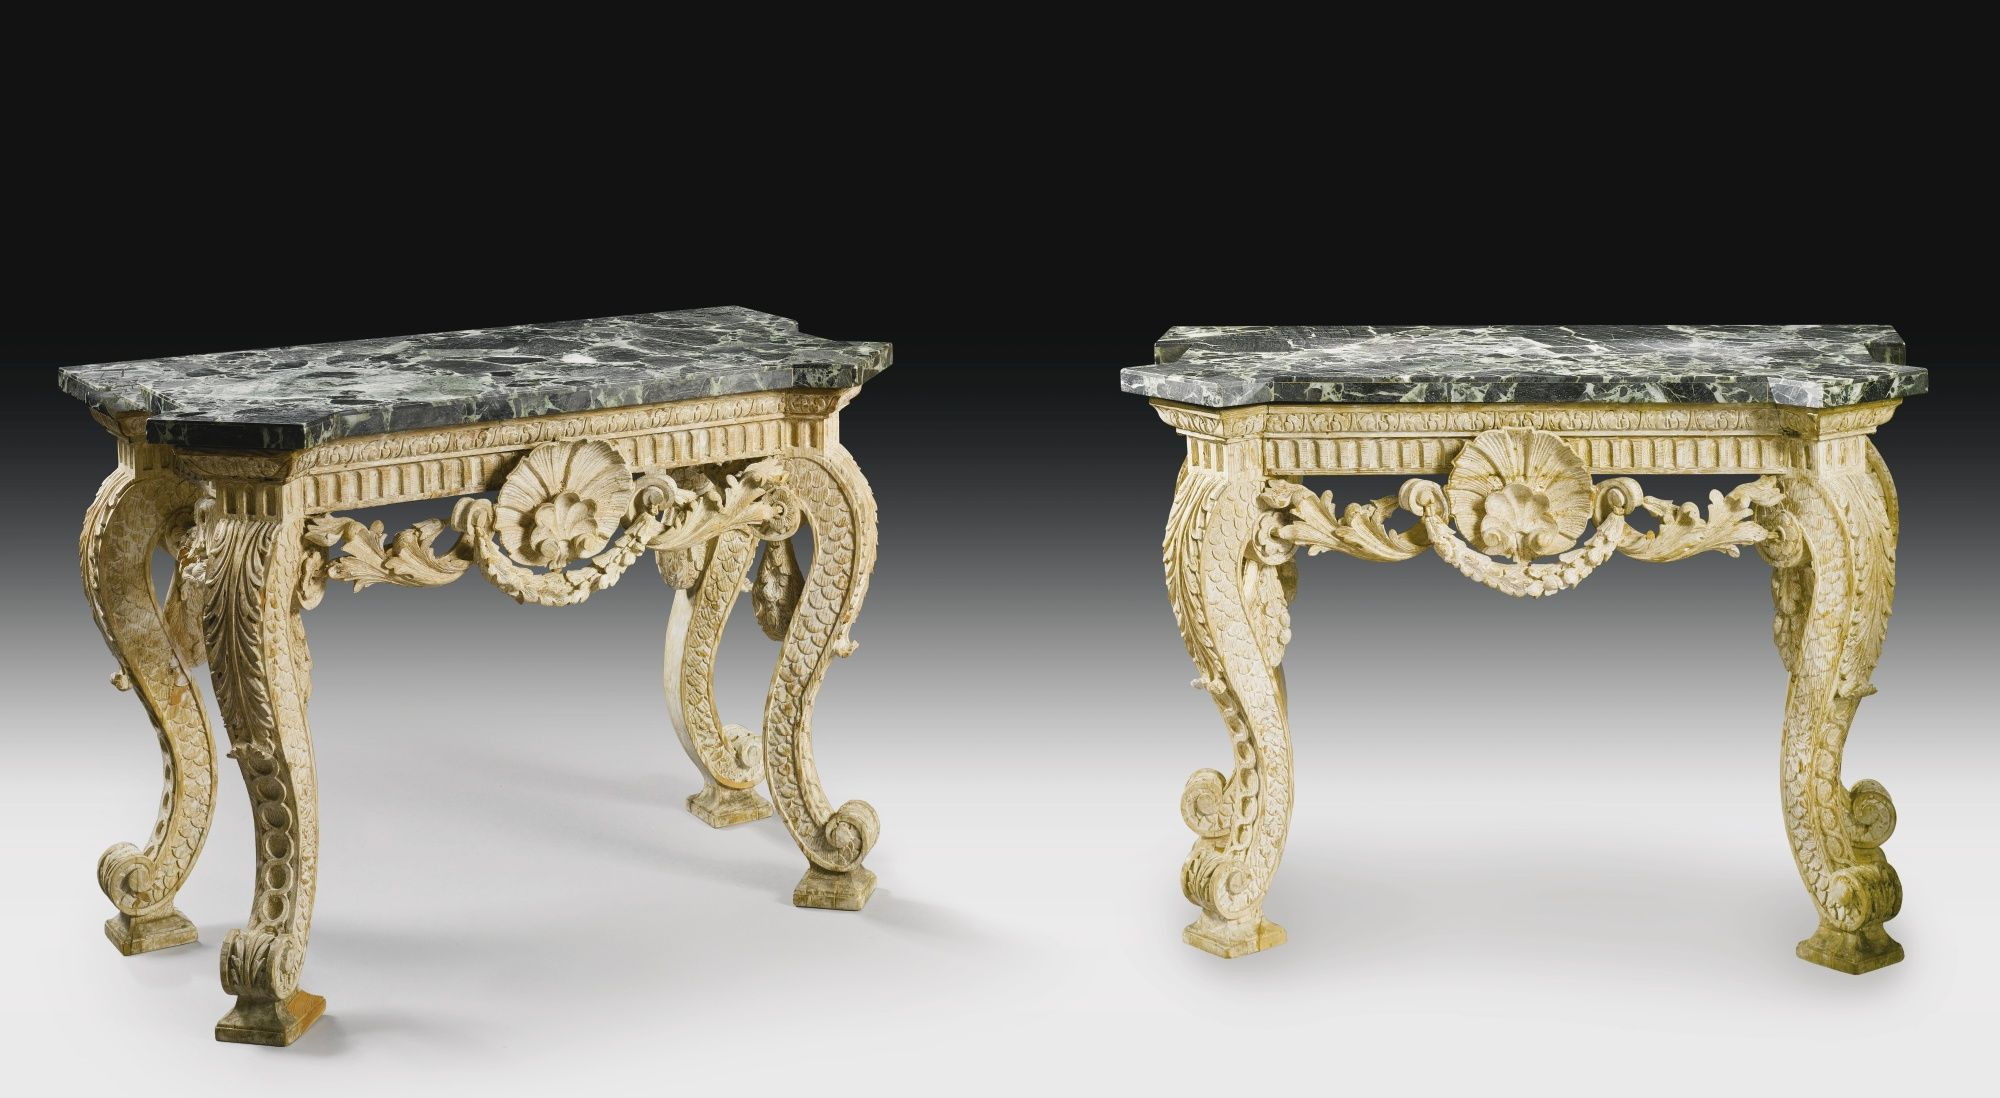 A pair of white-painted pine marble top pier tables in the manner of William Kent The present pair of tables shares a number of affinities to the strong Palladian designs of William Kent, especially to tables which he most probably designed for Houghton Hall circa 1730 including a table centered by a shell flanked by floral garlands with similar acanthus-carved S-scrolled legs which have scaled sides